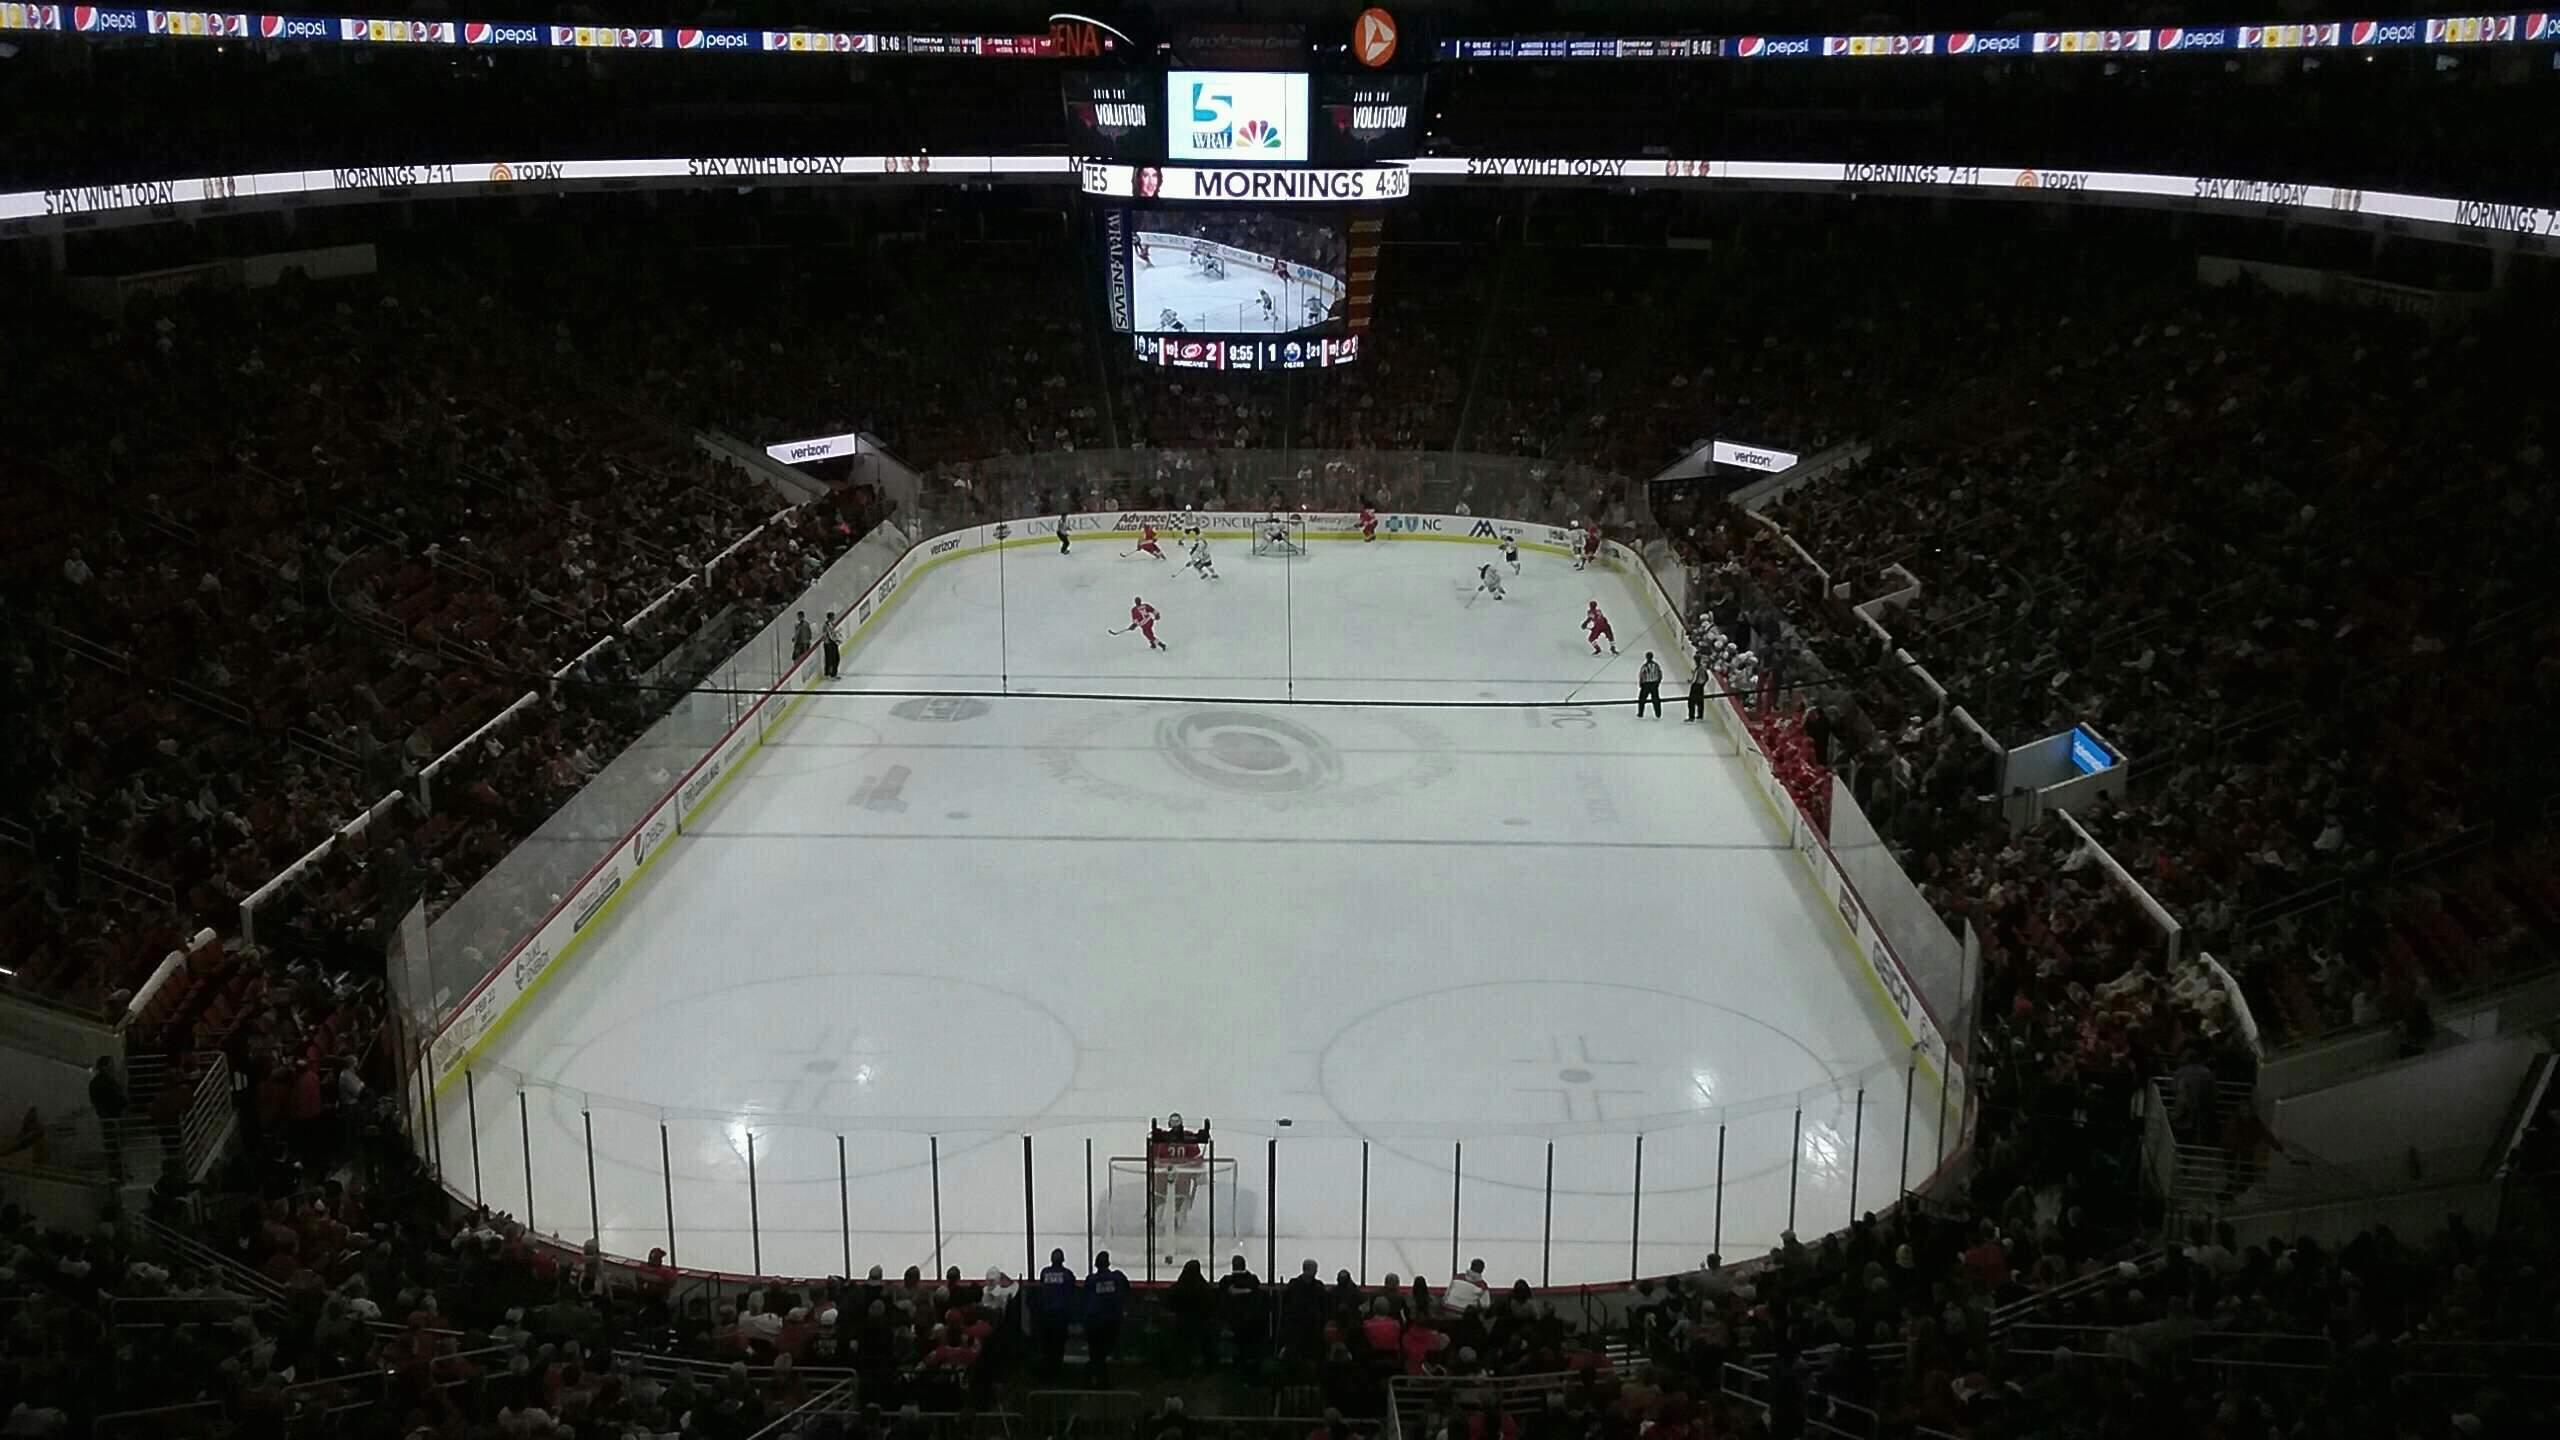 PNC Arena Section 212 Row E Seat 4